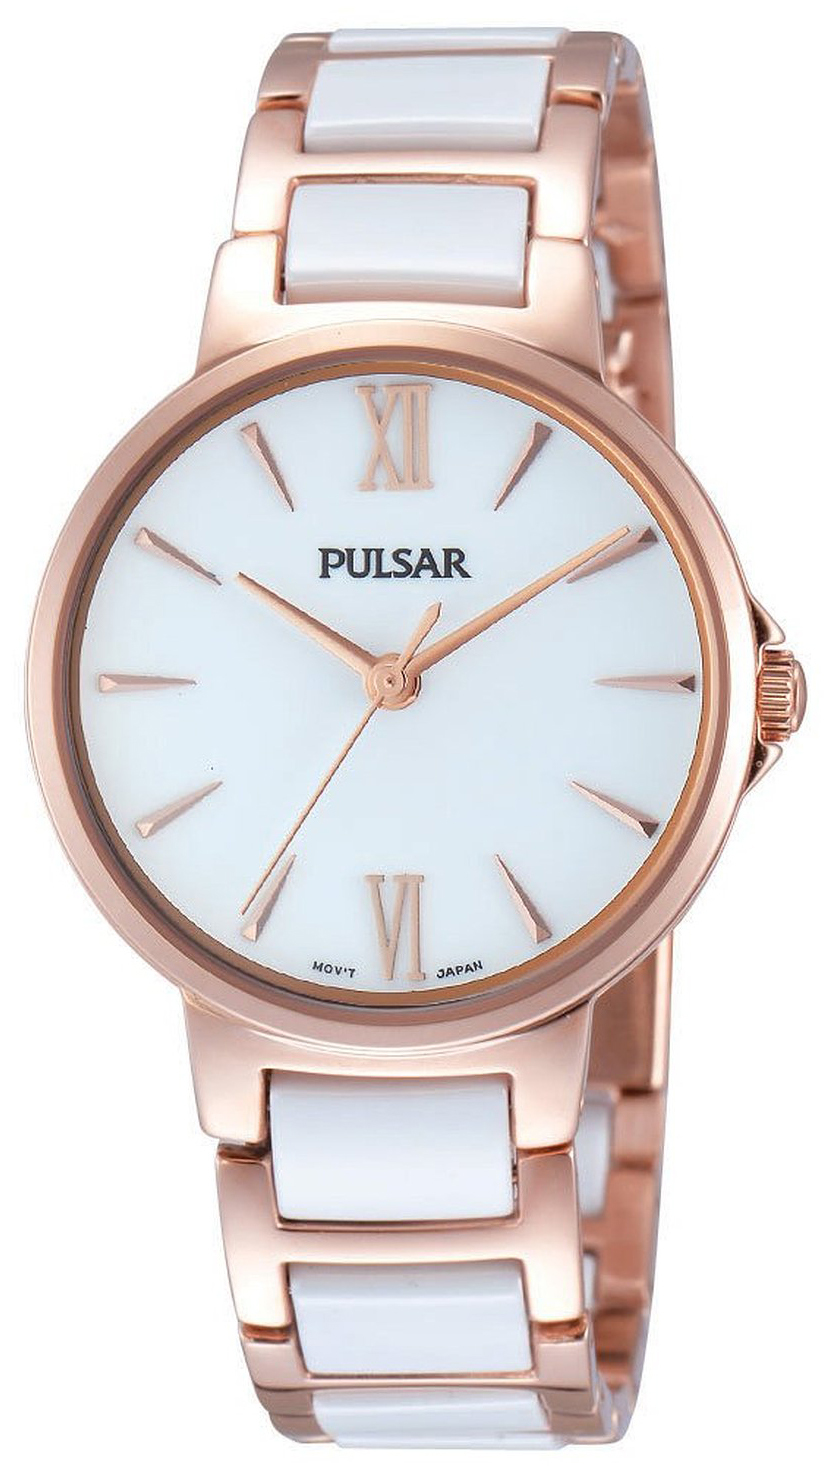 Pulsar Dress Damklocka PH8078X1 Vit/Roséguldstonat stål Ø32 mm - Pulsar